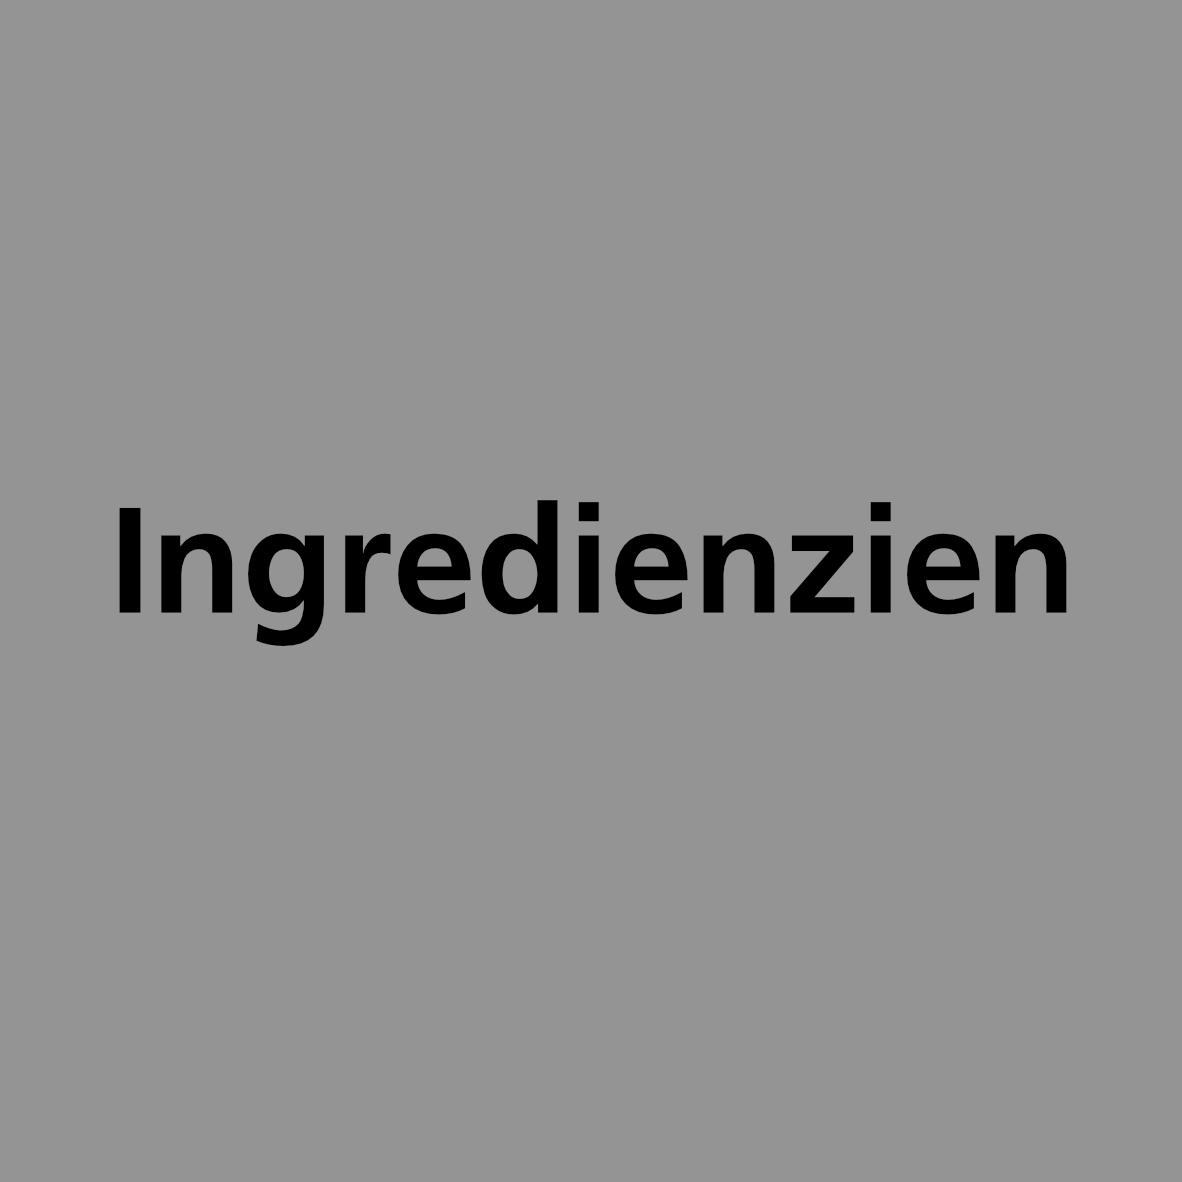 Ingredienzien, waste-art Georg Marbet